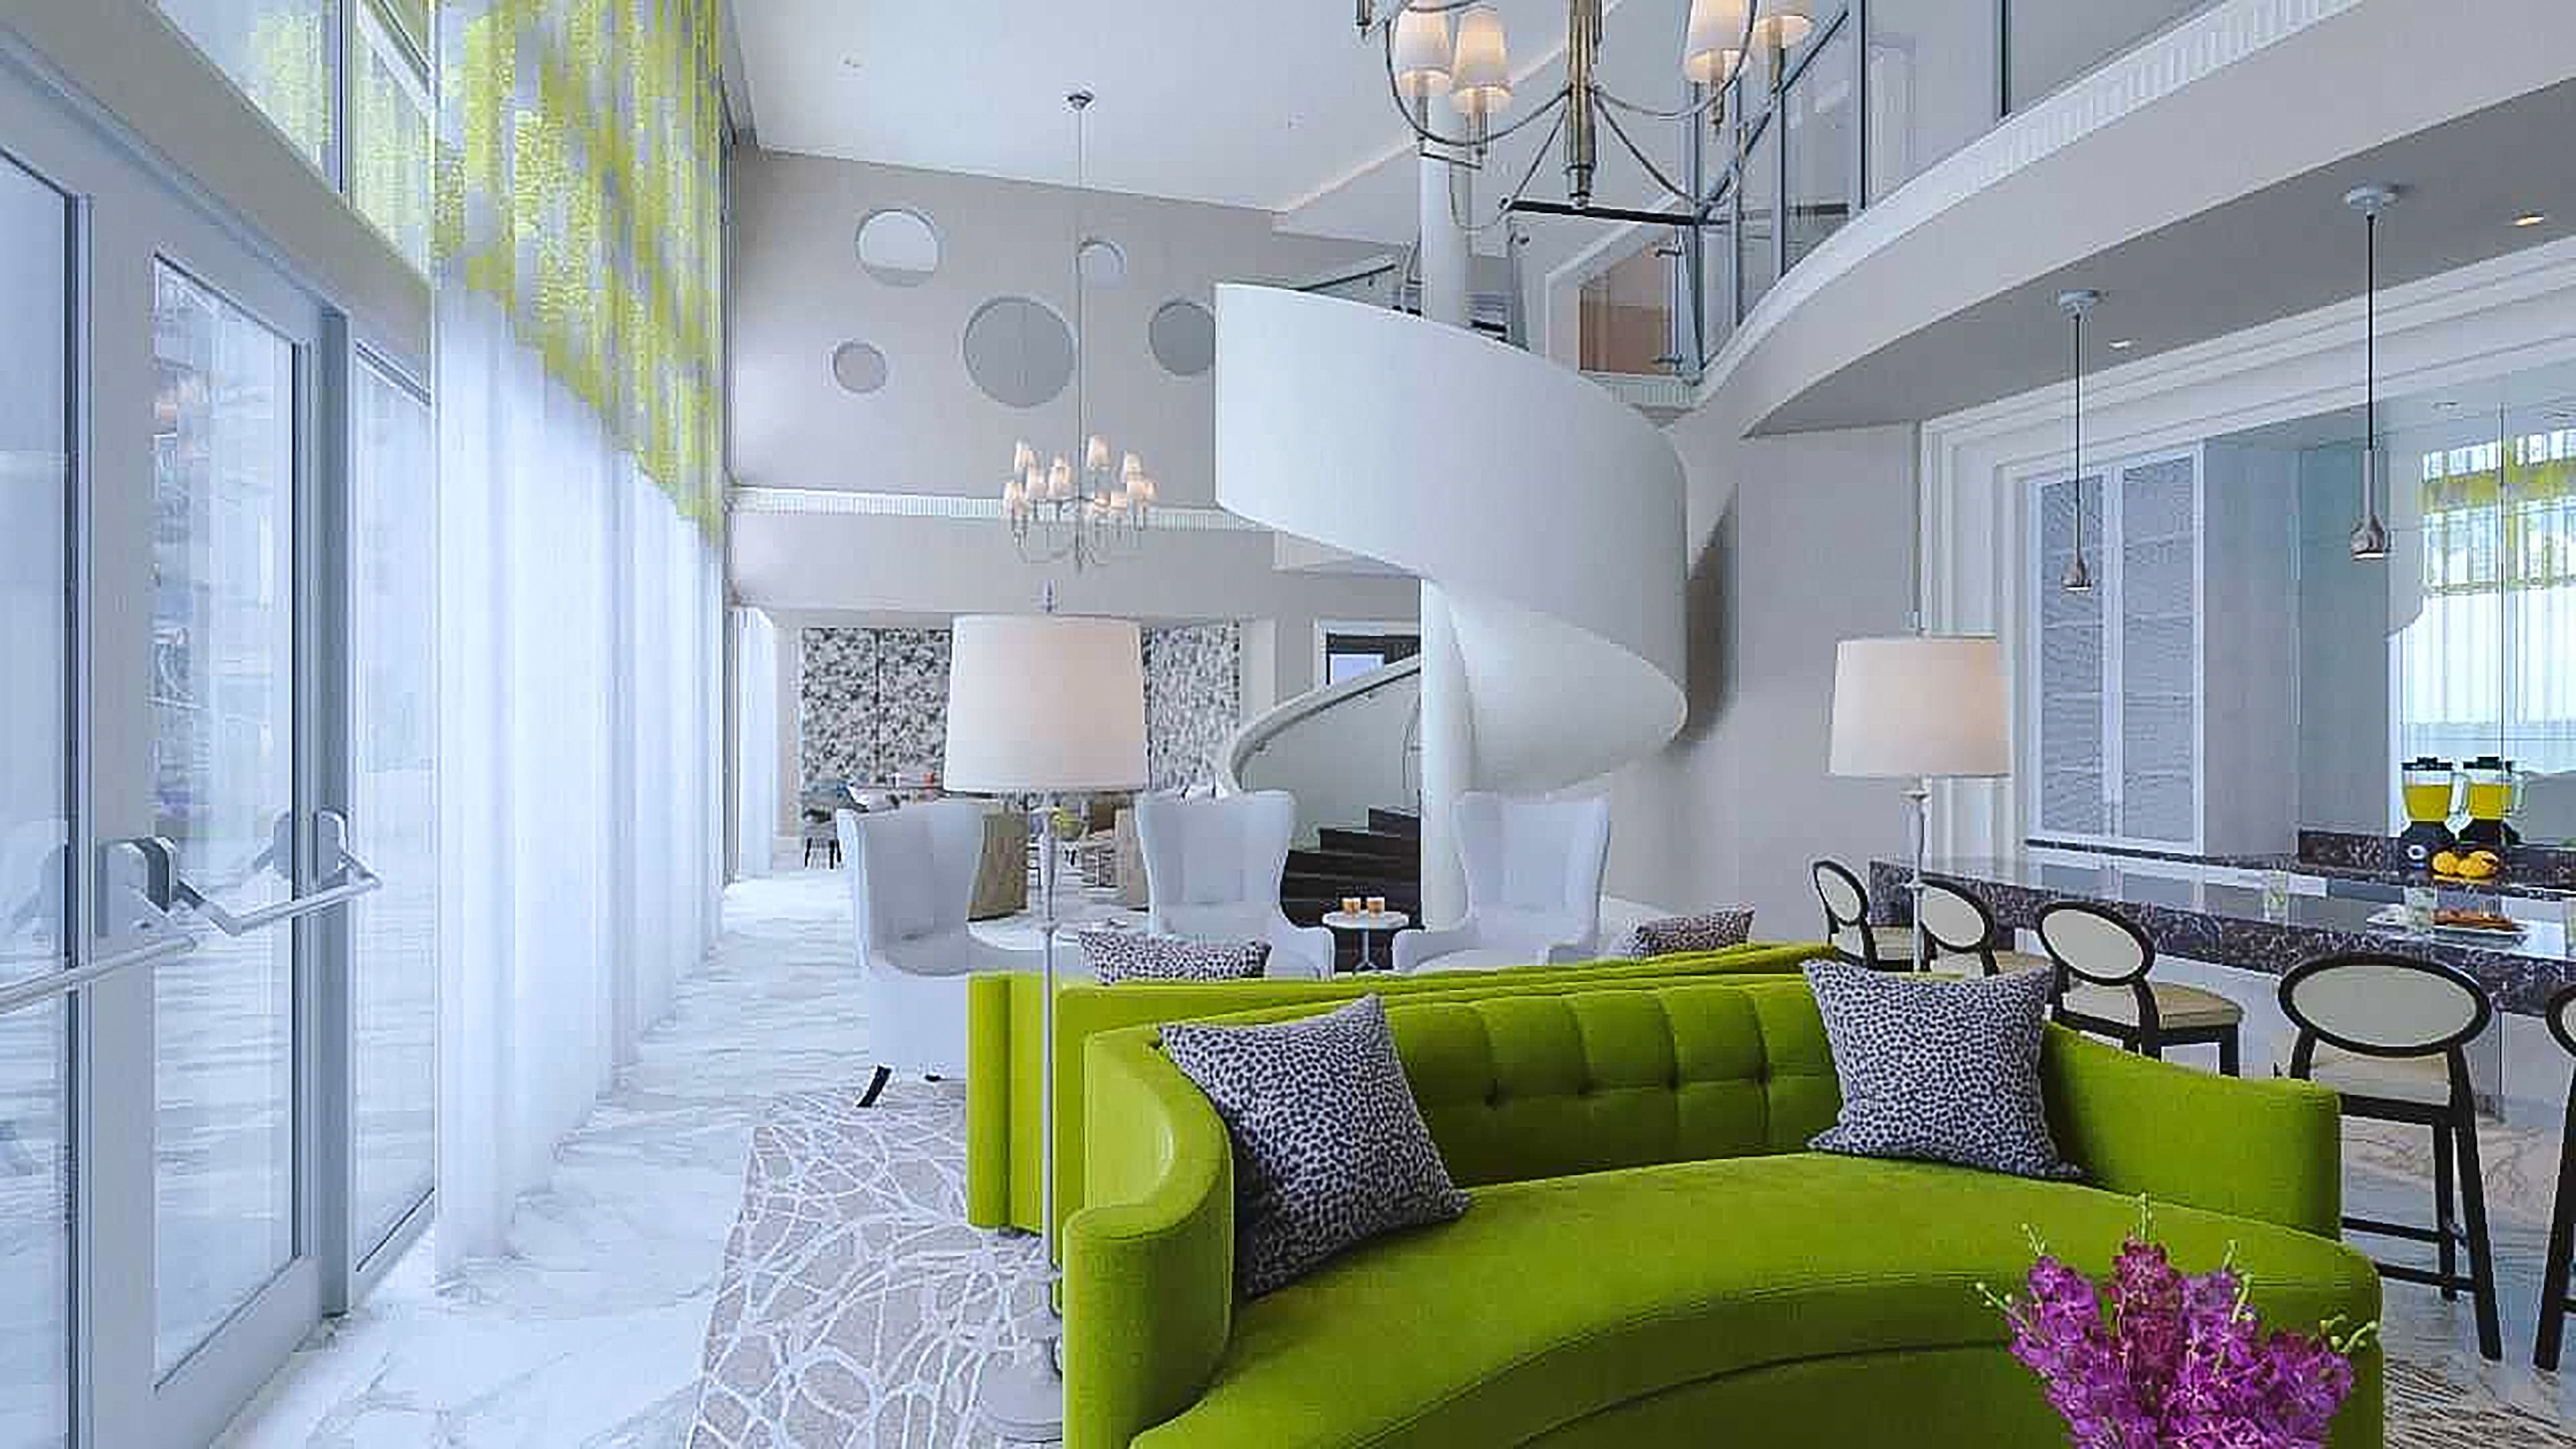 Apartment Amenity Space Design By Beasley Henley Interior In Tampa Fl Also  Rh Pinterest